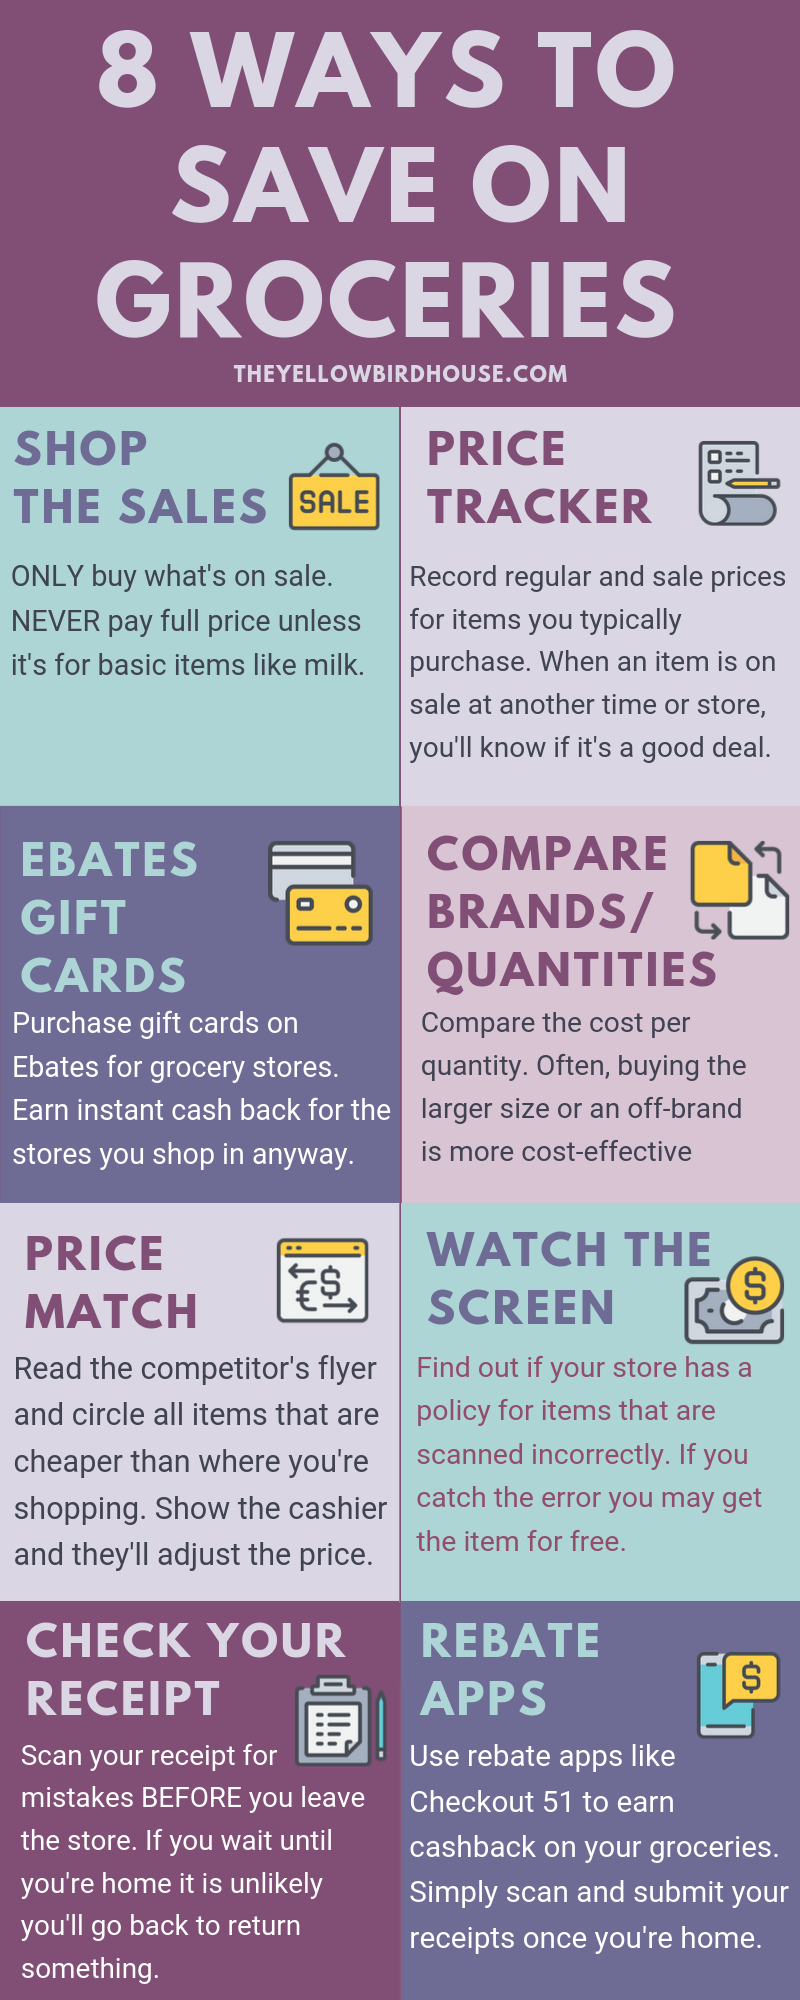 8 easy ways to save money on groceries infographic. Money saving tips for moms. Save money on groceries with these tips. How to price match and shop the sales.